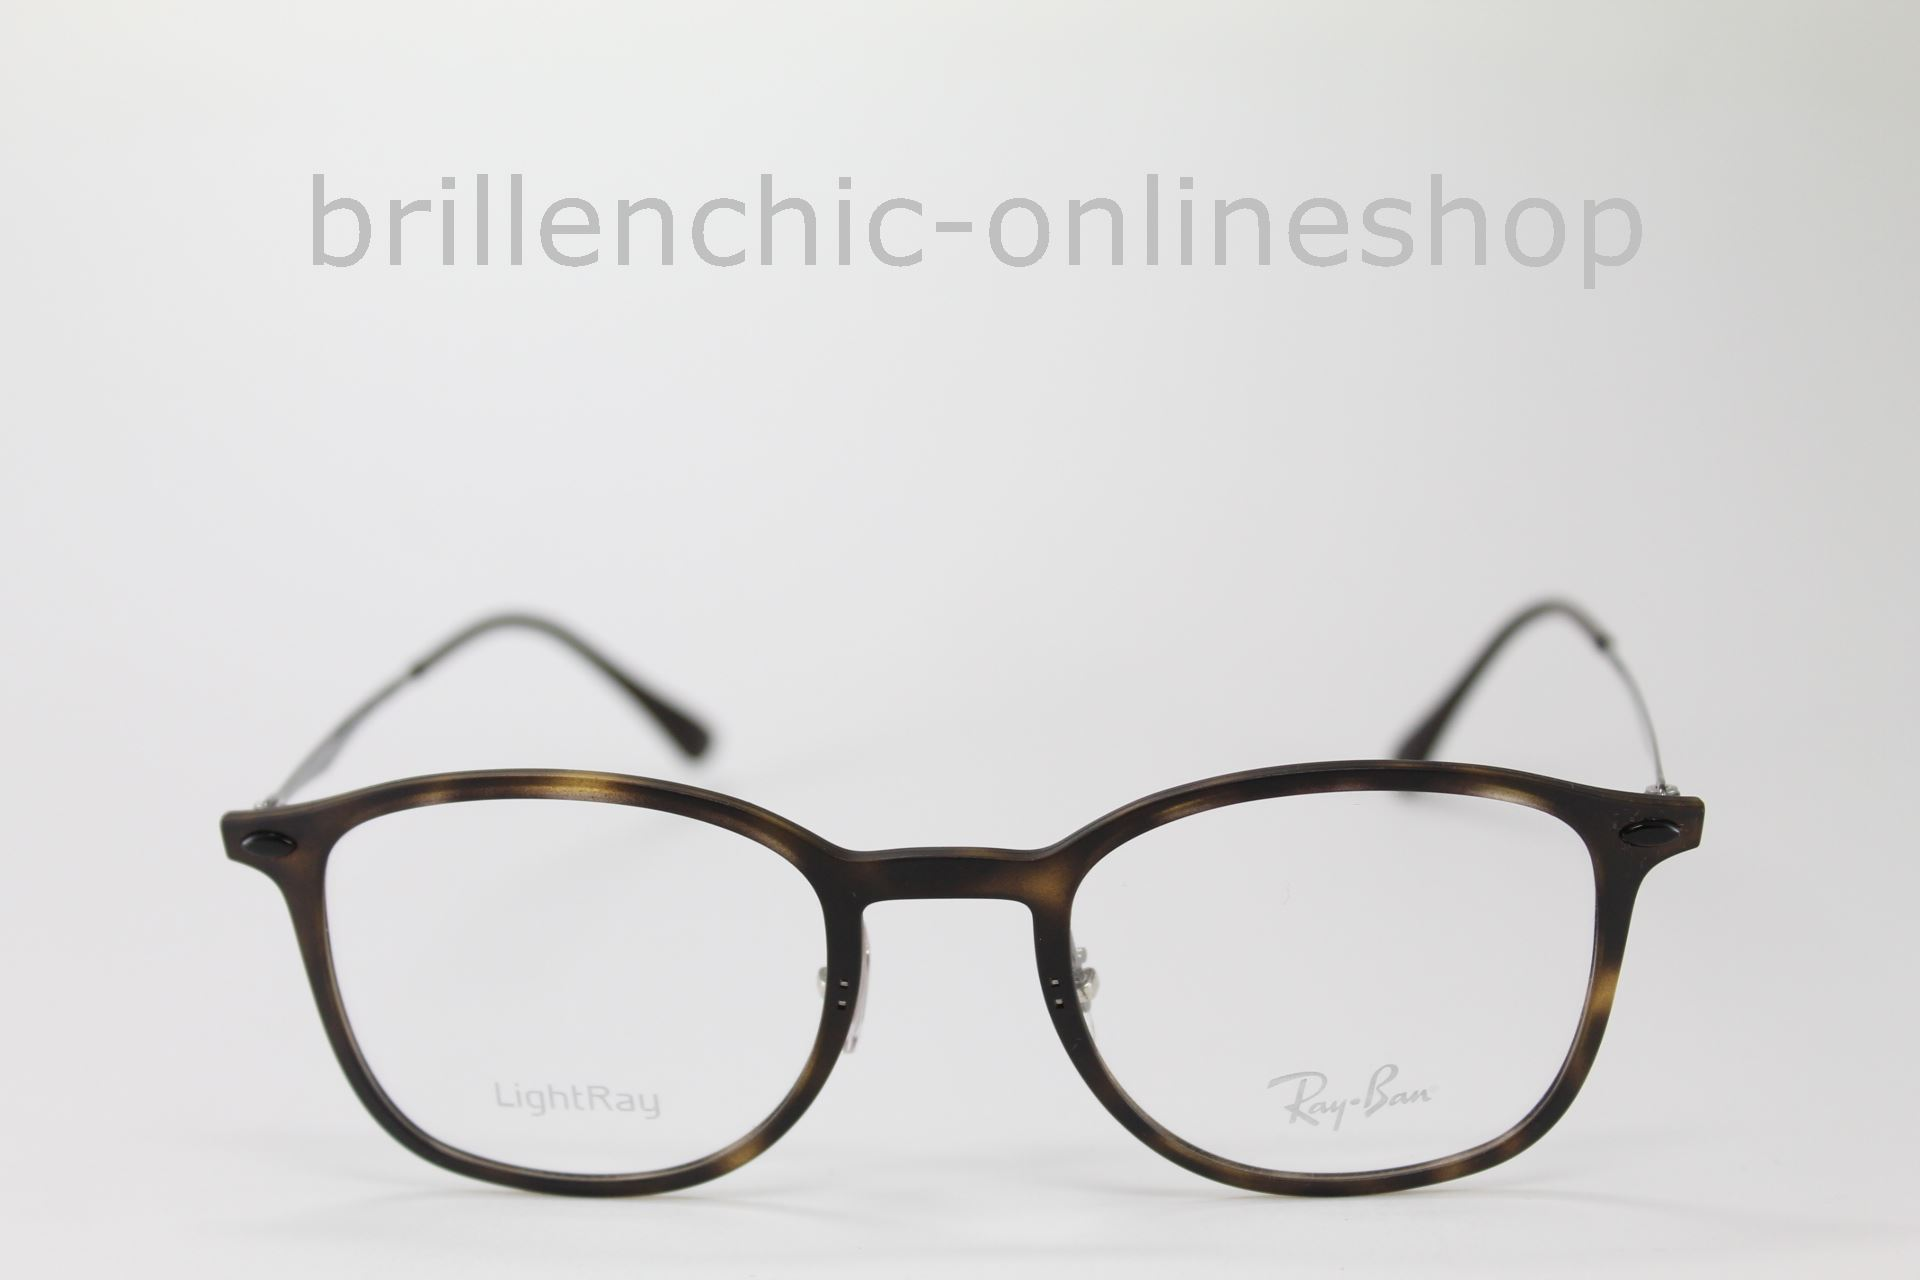 c344d00142 Brillenchic-onlineshop in Berlin - Ray Ban RB 7051 5200 LIGHT RAY